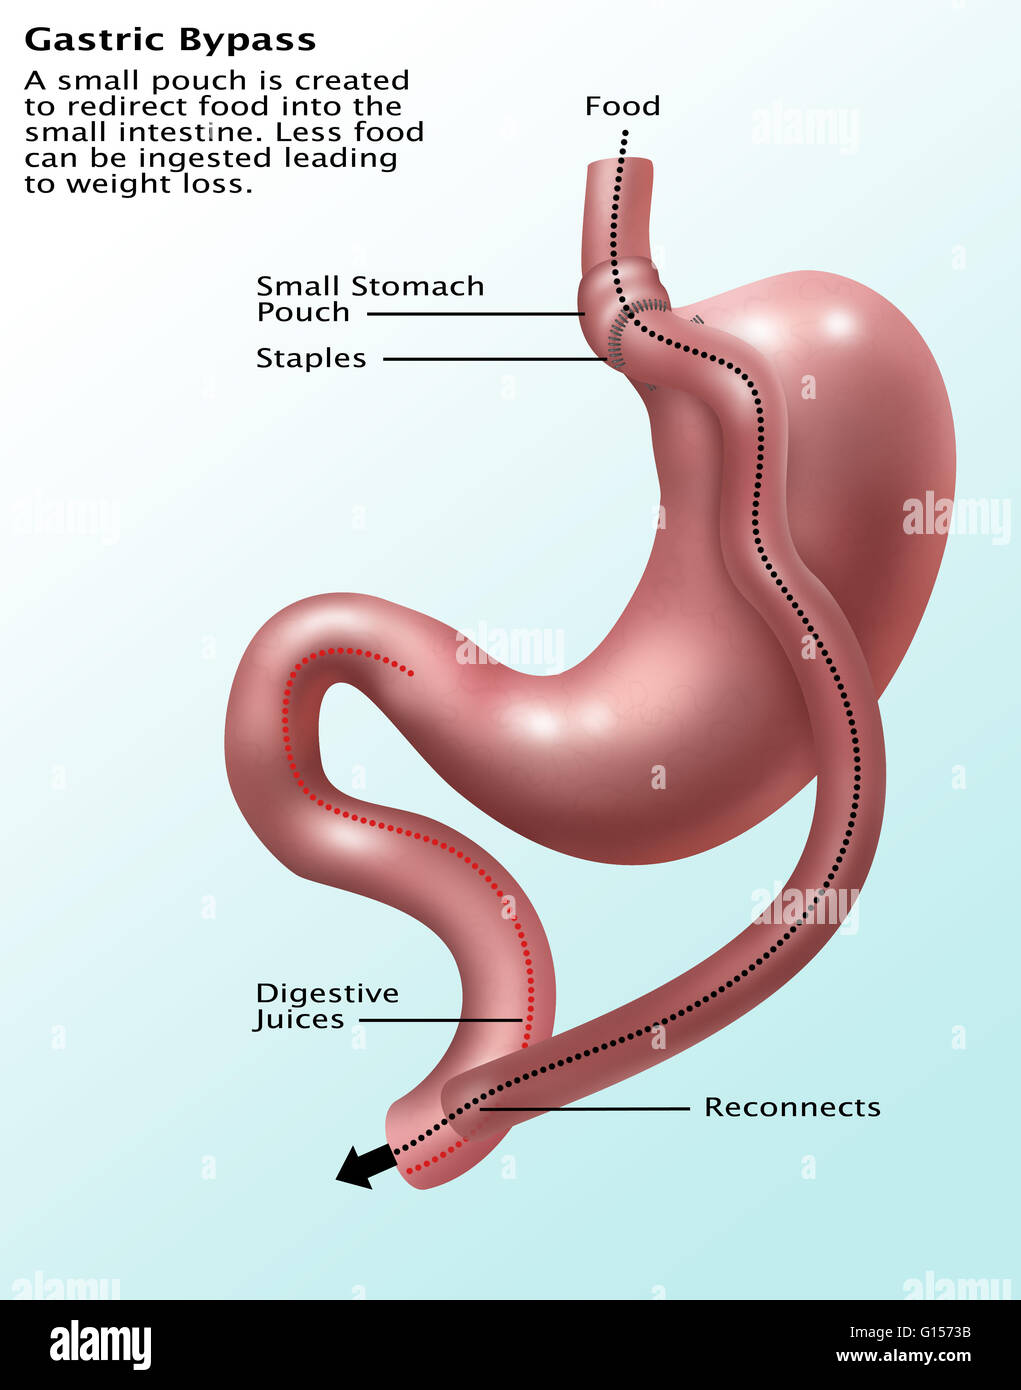 Gastric Bypass Surgery Refers To A Surgical Procedure In Which The